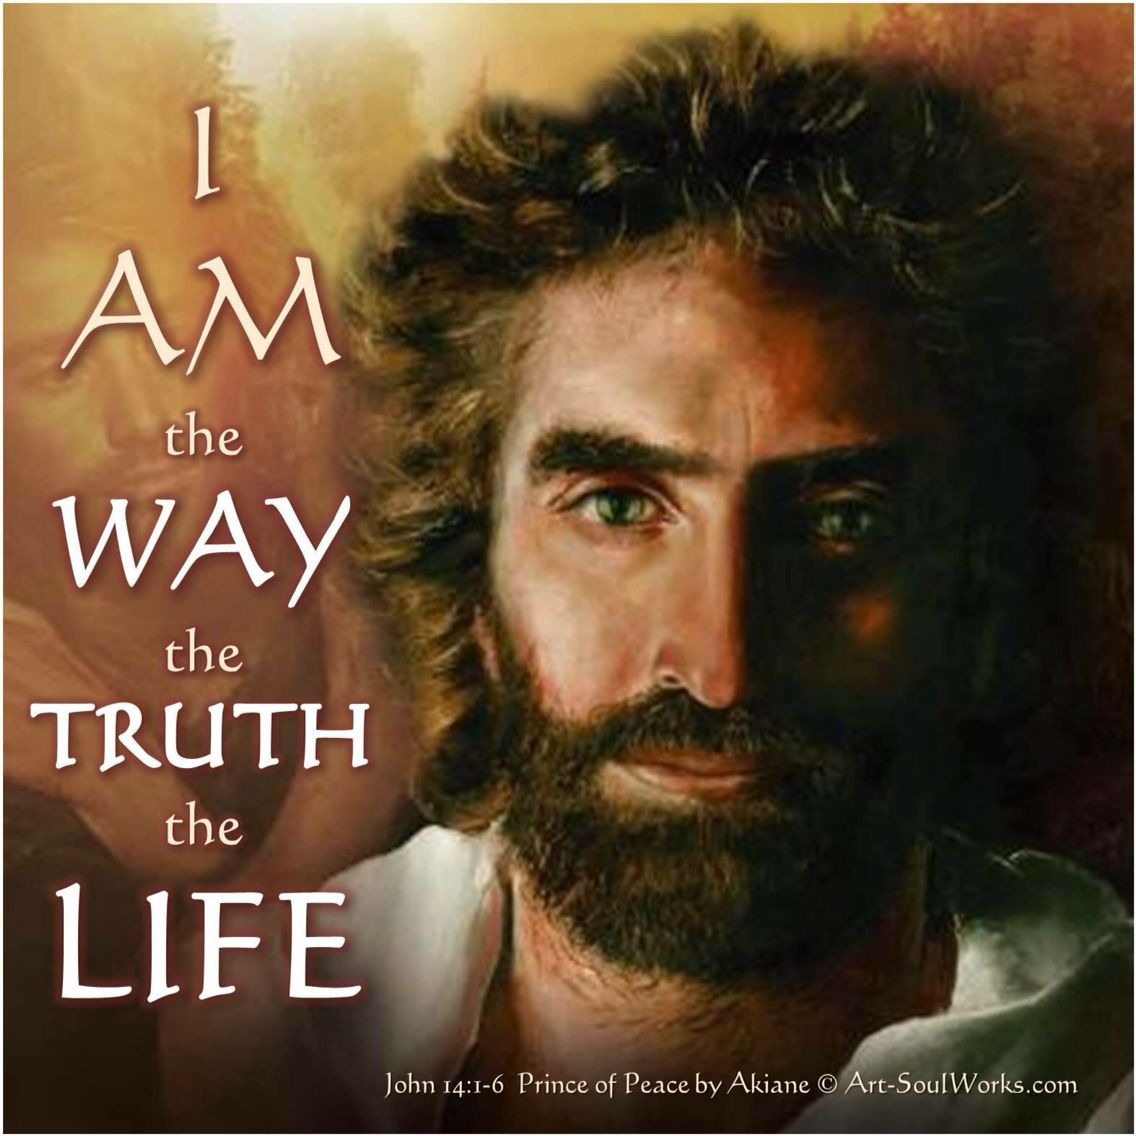 picture of jesus painted by 8yr old akiane kramarik from a vision